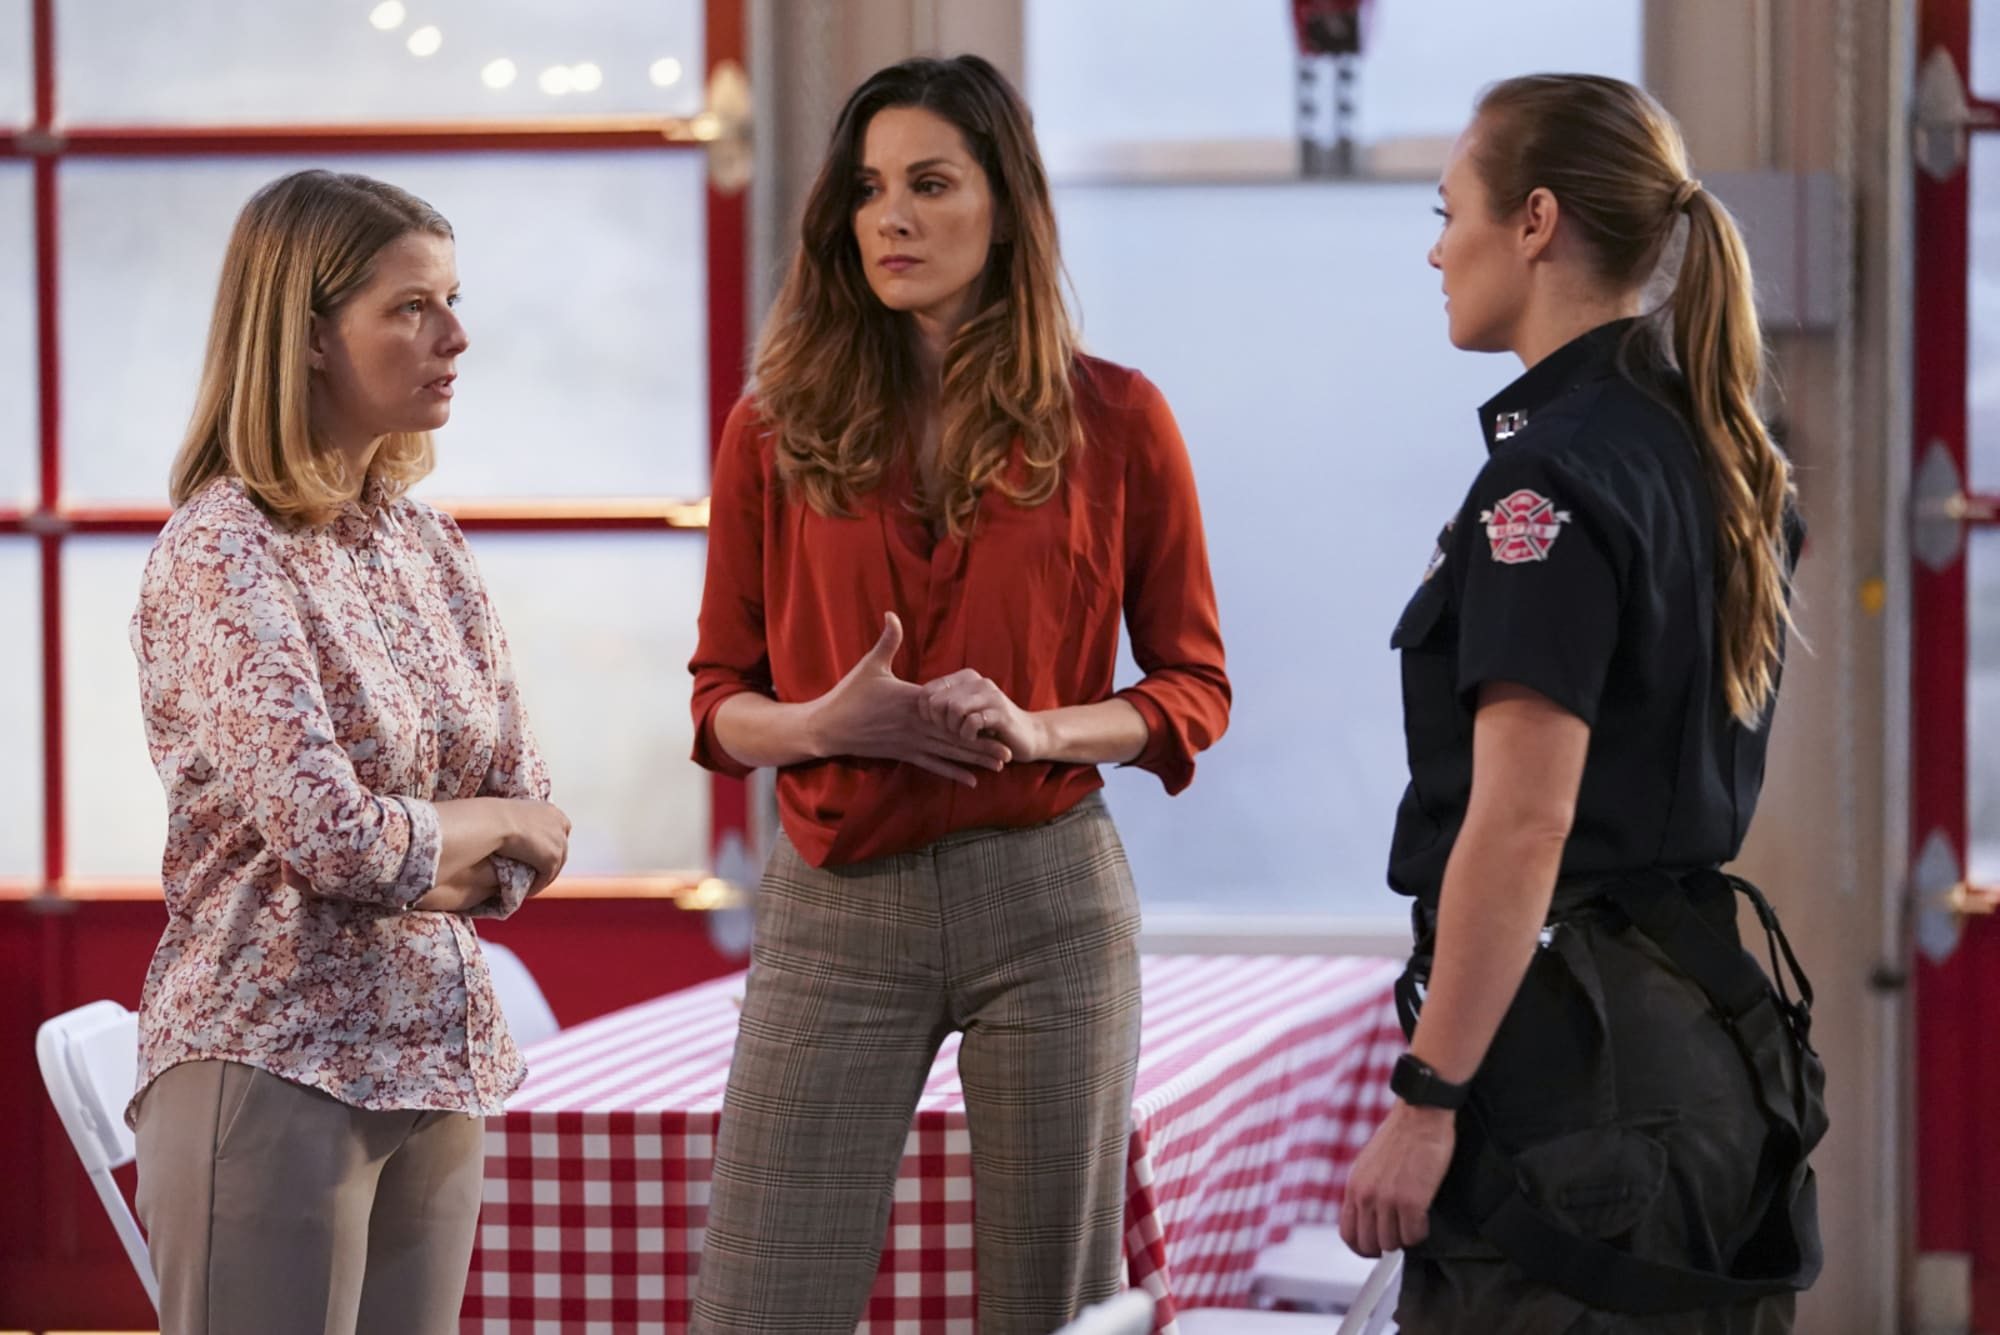 Station 19: Maya's denial because she sees her father in herself?